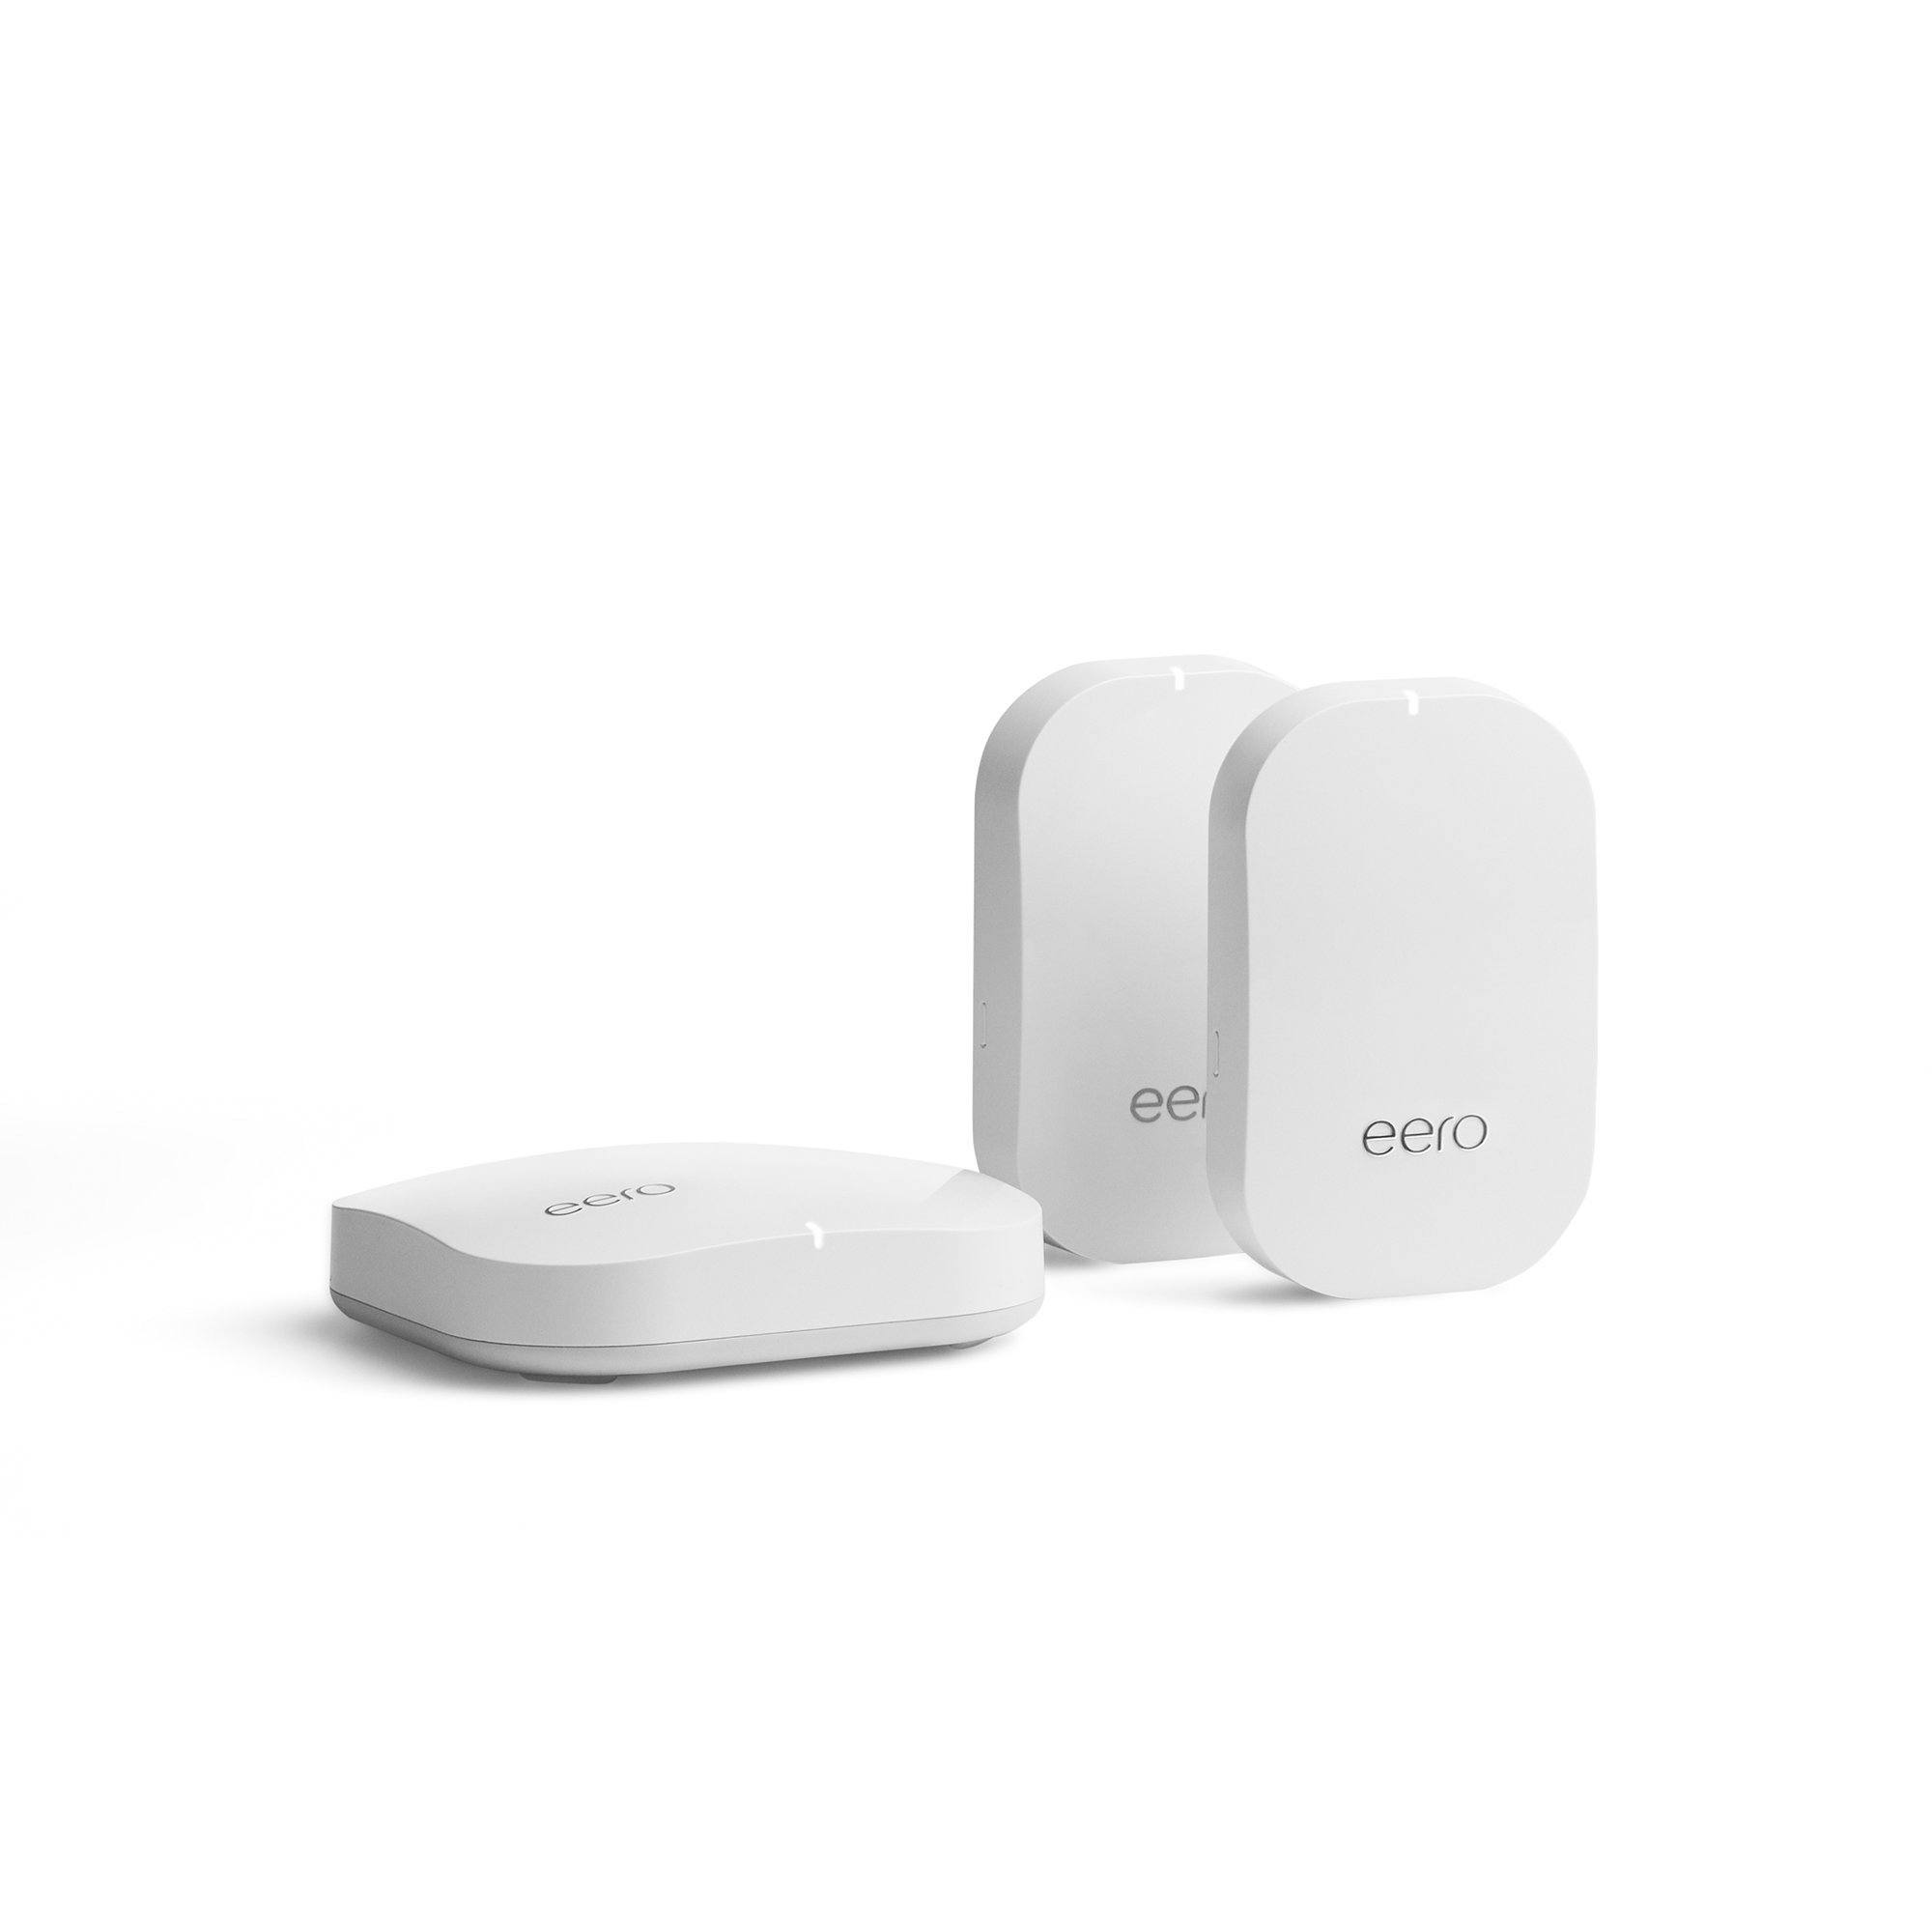 eero Home WiFi System (1 eero Pro + 2 eero Beacons) - Advanced Tri-Band Mesh WiFi System to Replace Traditional Routers and WiFi Ranger Extenders - Coverage: 2 to 4 Bedroom Home by eero